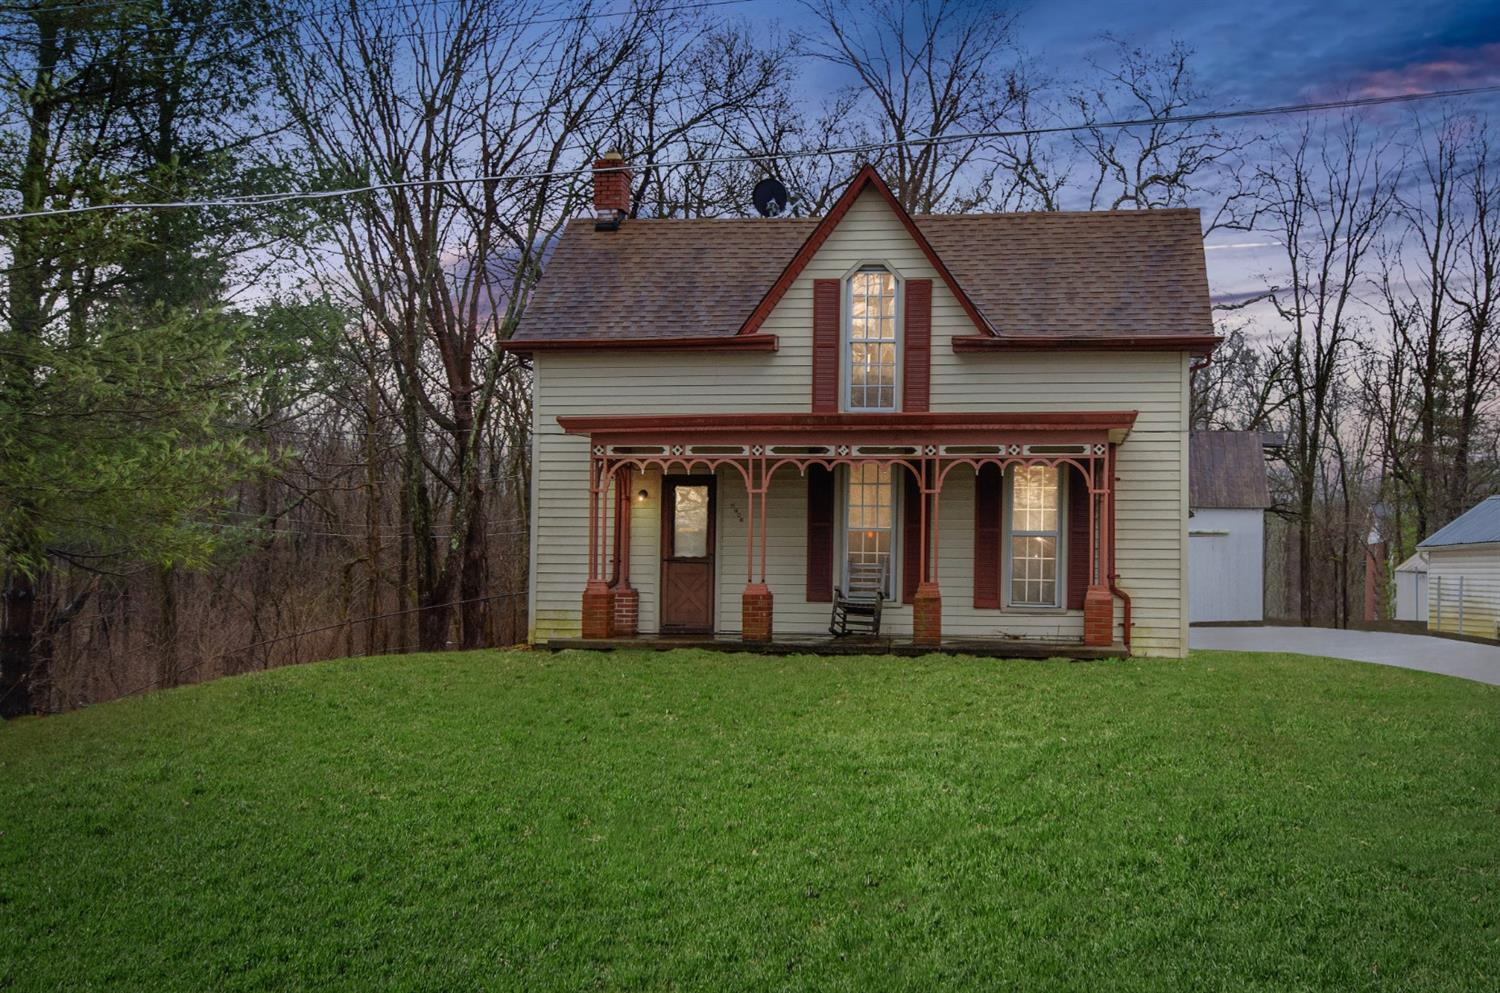 Property for sale at 6787 St Rt 727, Wayne Twp,  OH 45122